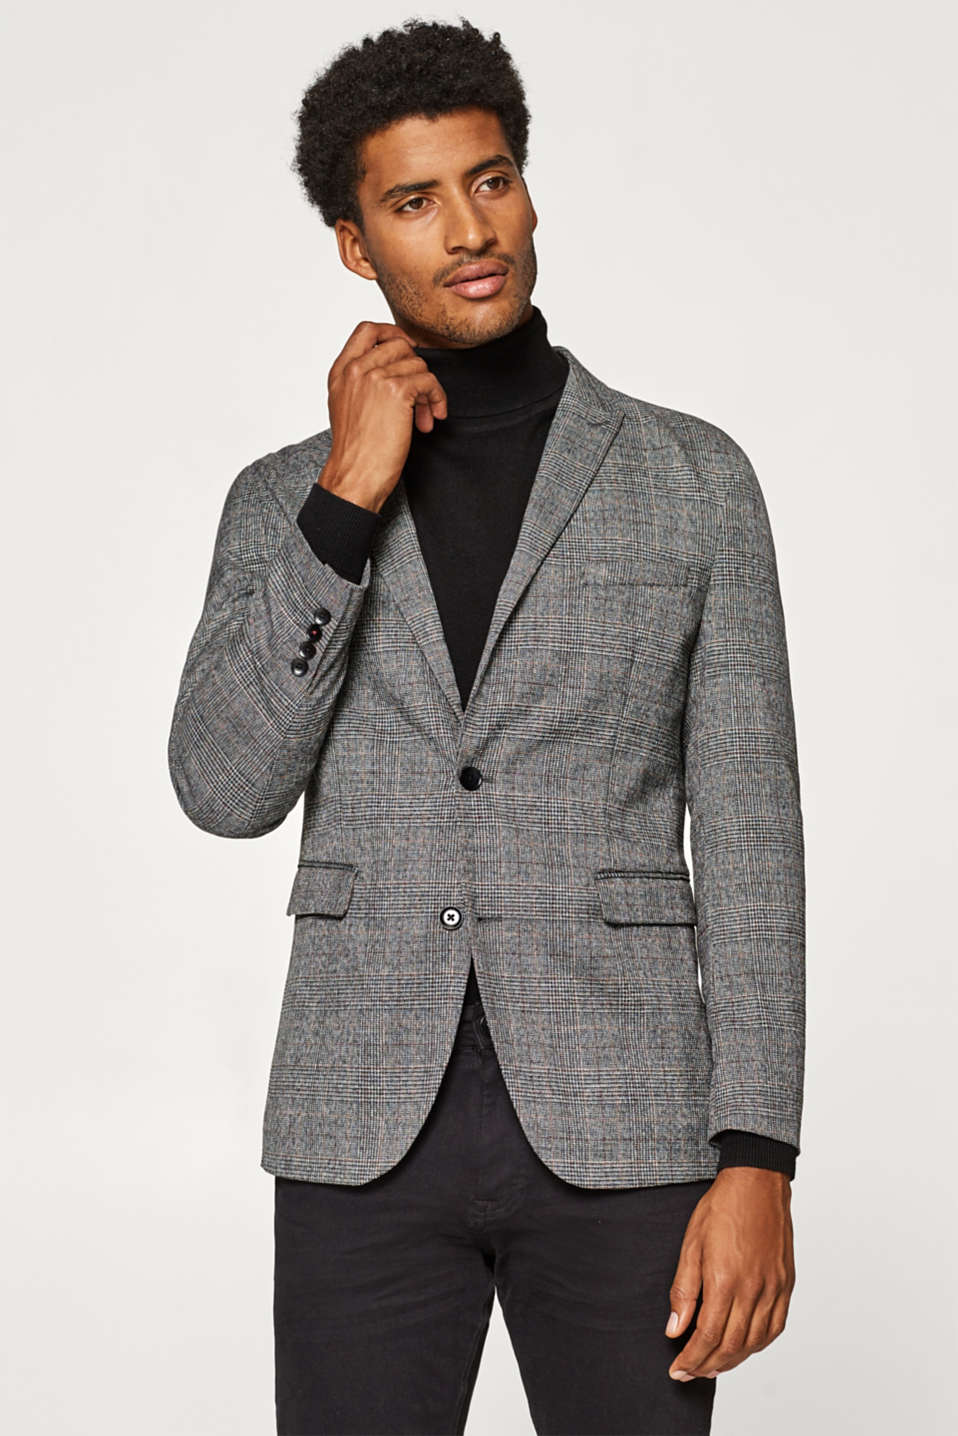 Esprit - Jacket with a Prince of Wales check pattern